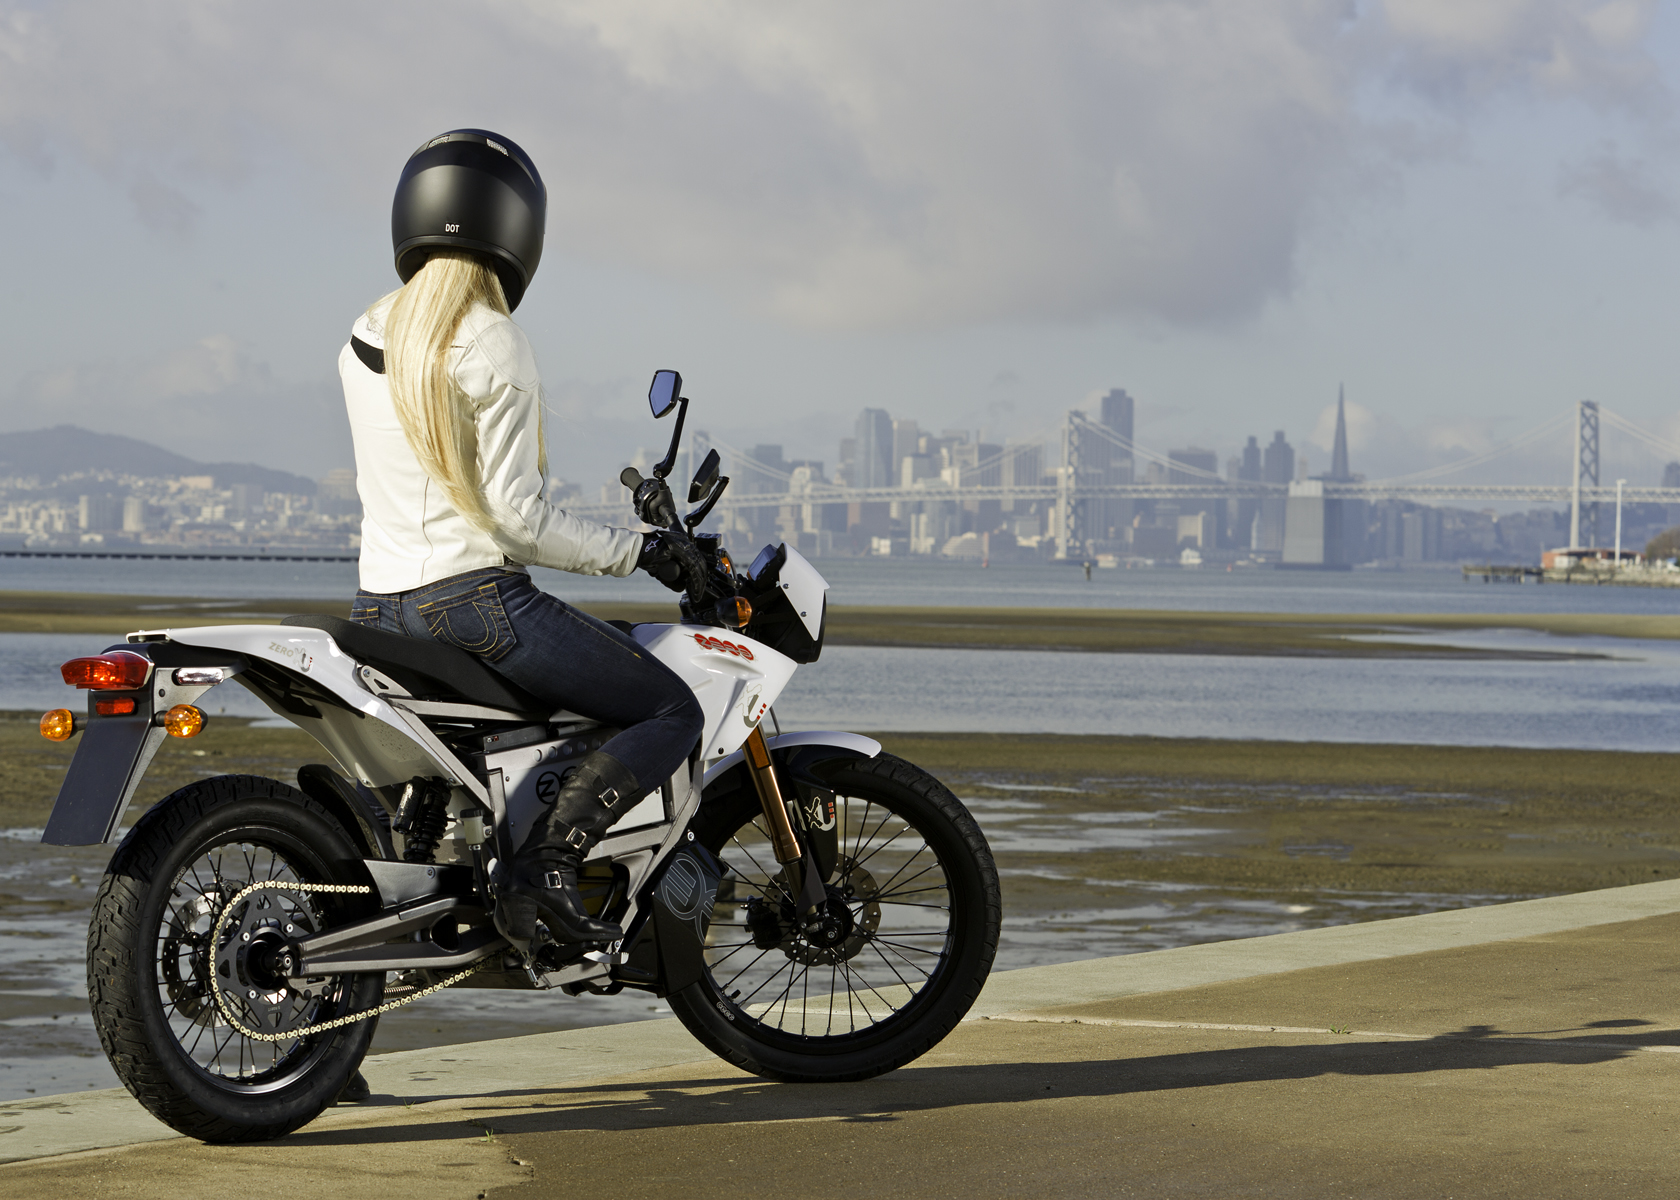 2011 Zero XU Electric Motorcycle: Profile, View of San Francisco Bay